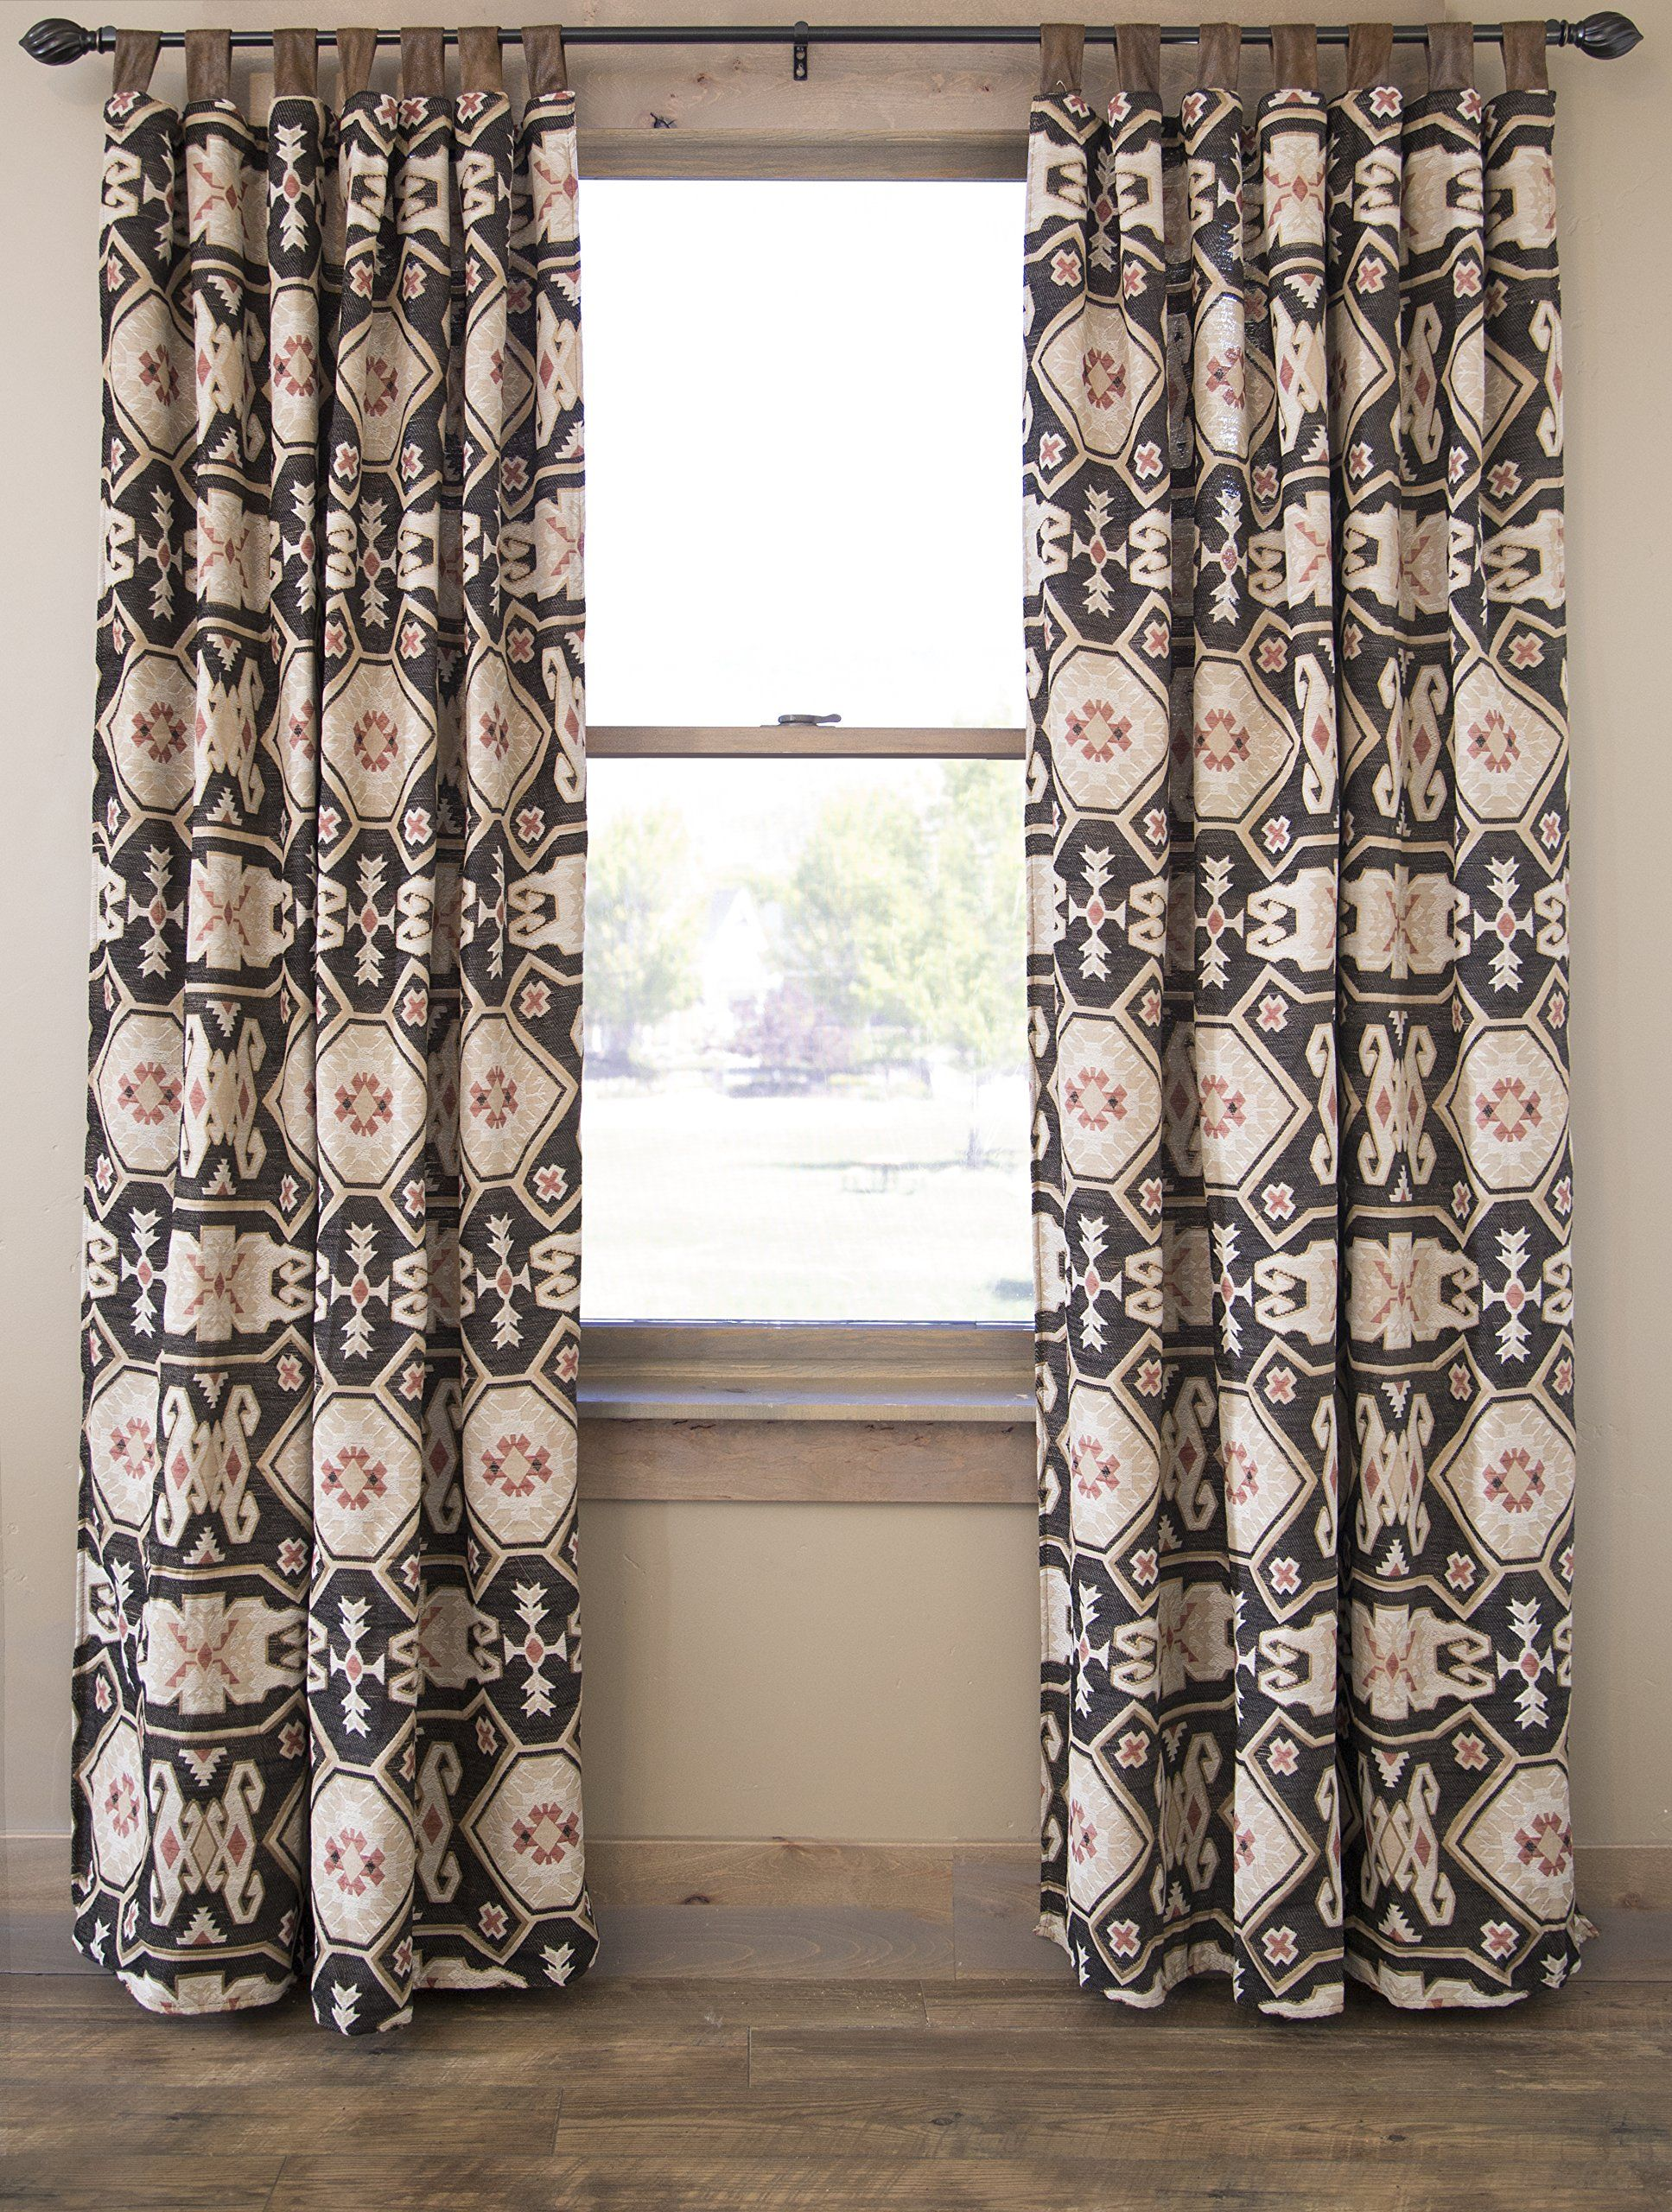 Southwestern Curtain Panels Set Of 2 54 X 84 Tab Top Drapes By North End Decor To View Further For This Item Southwestern Curtains Panel Curtains Curtains